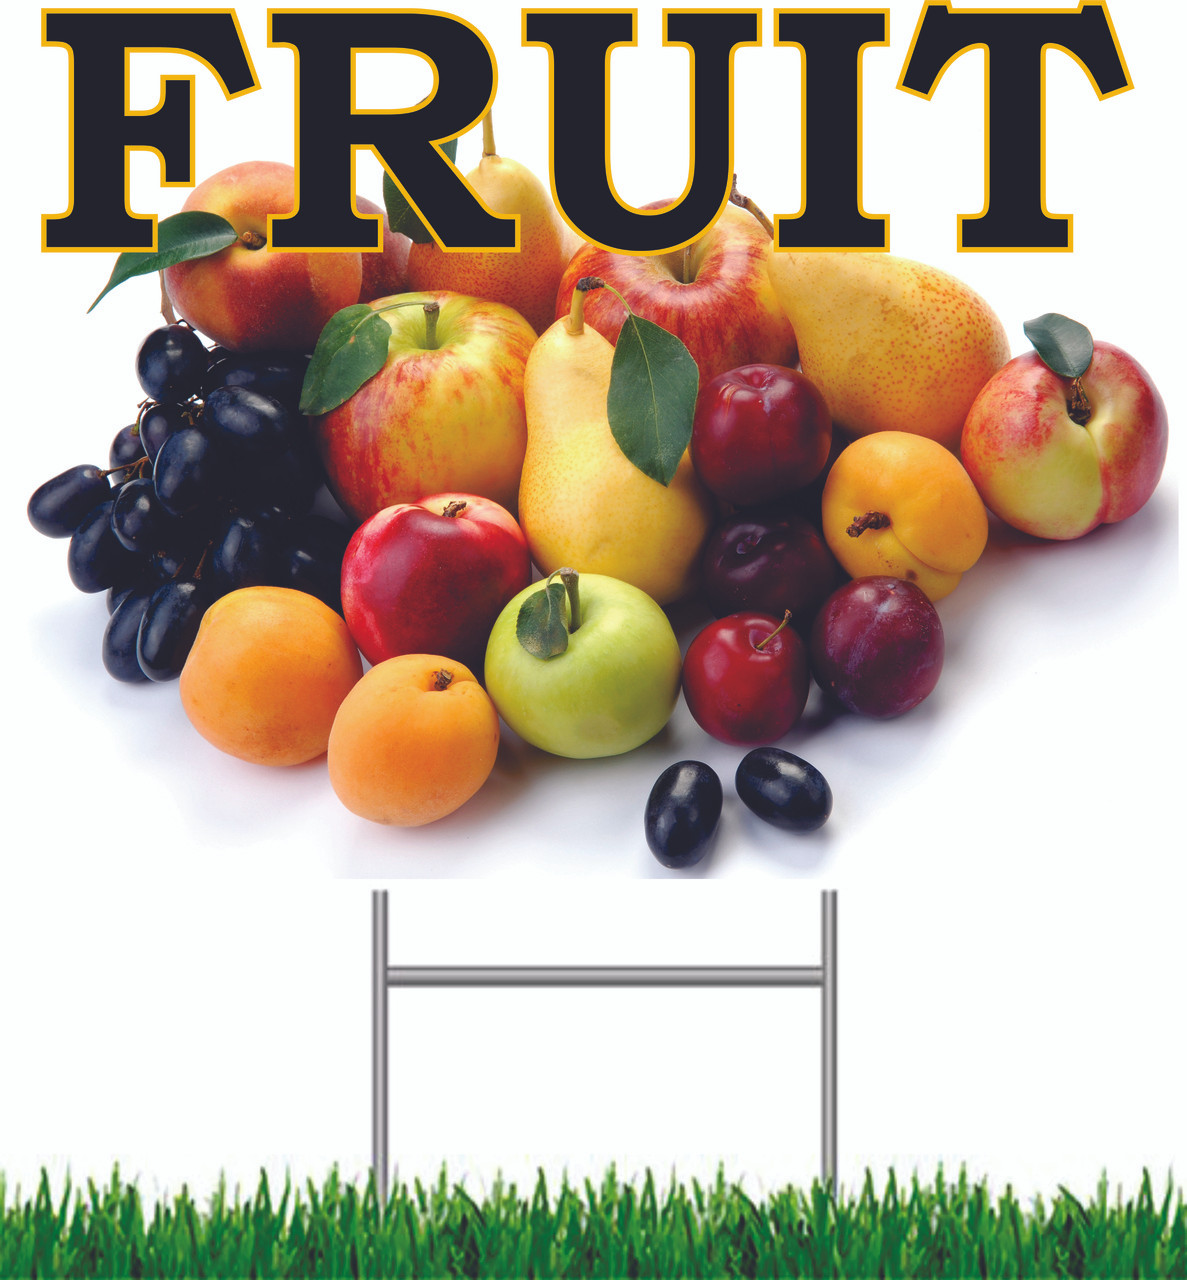 Fruit Yard Sign Very Nice Looking Road Sign!